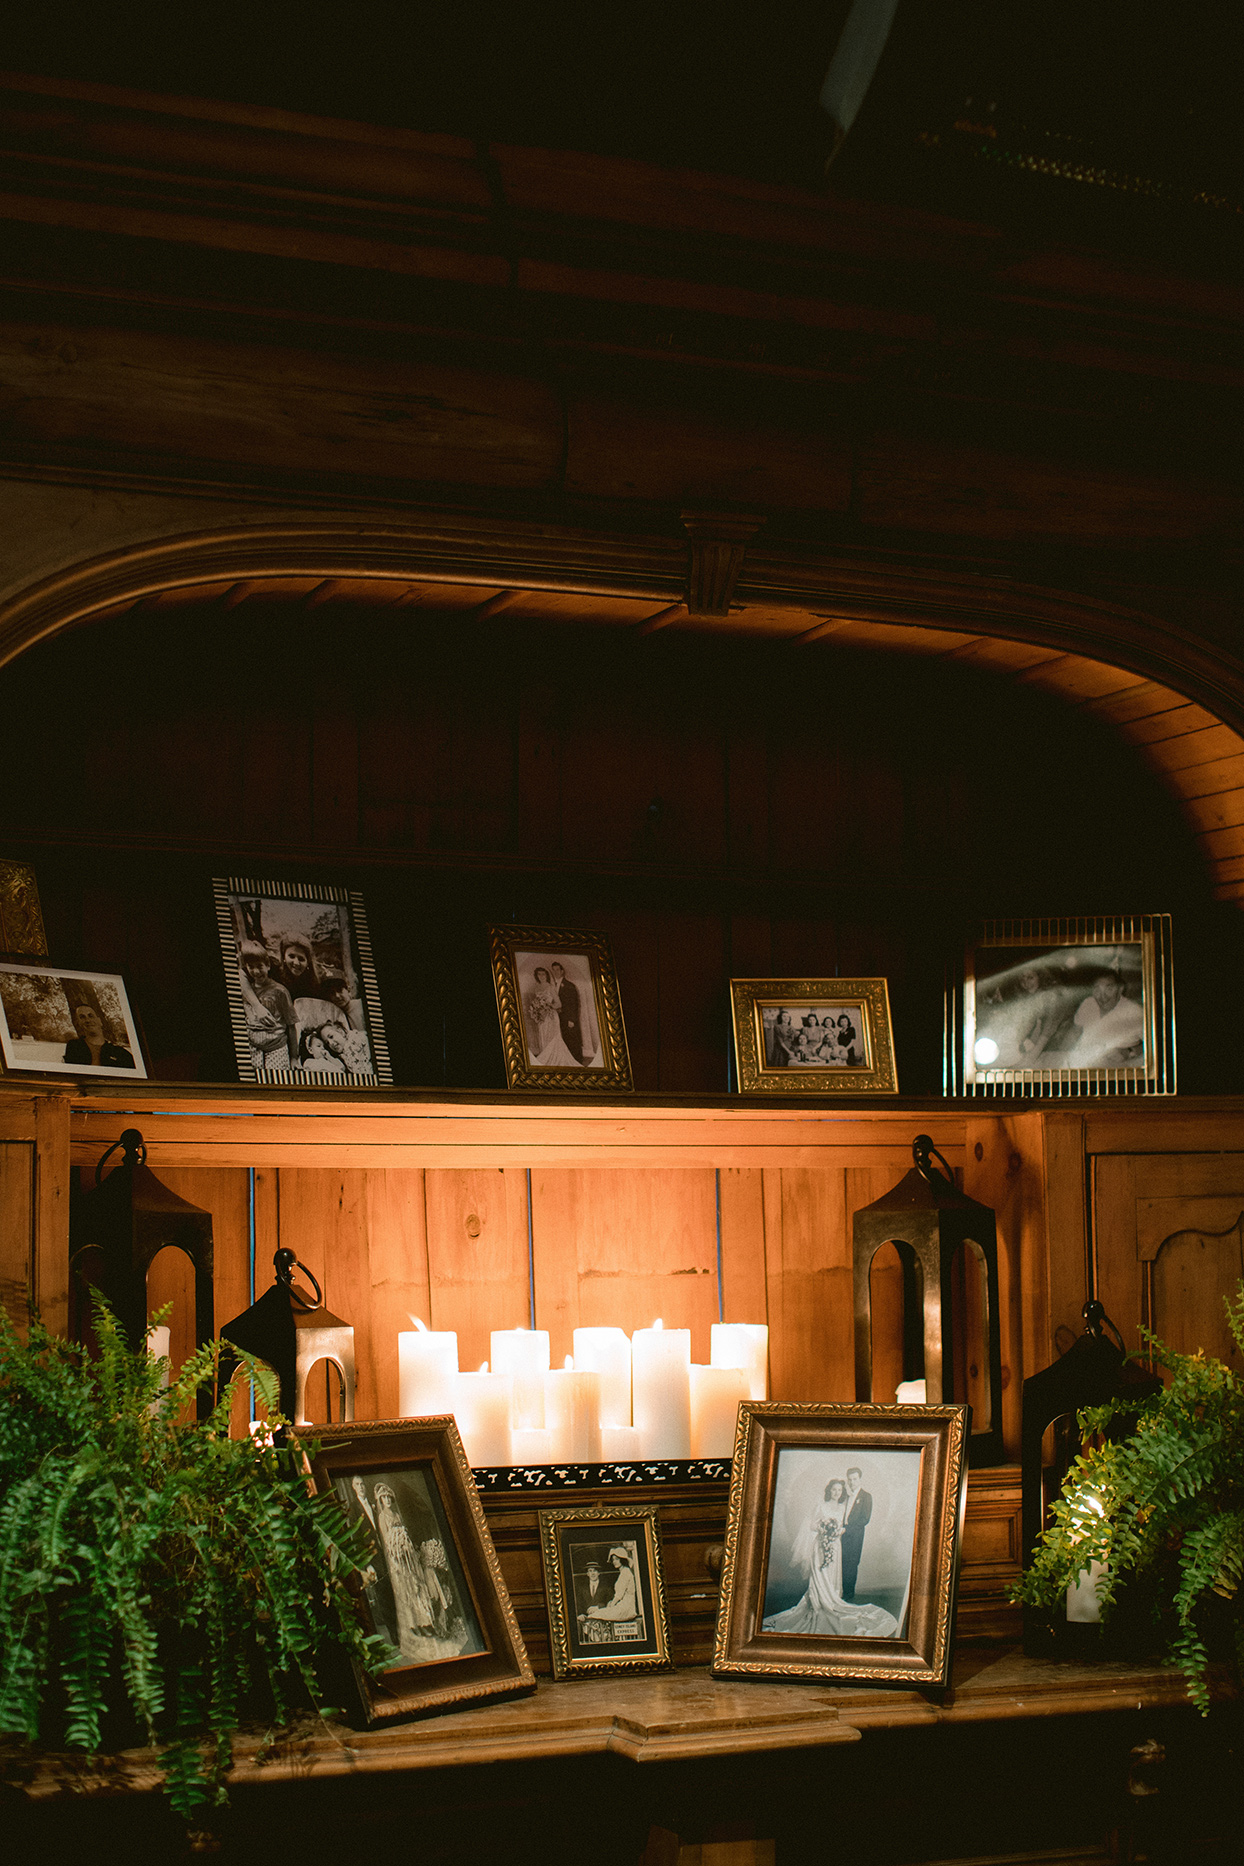 framed photos of family members lit by candles at rehearsal dinner